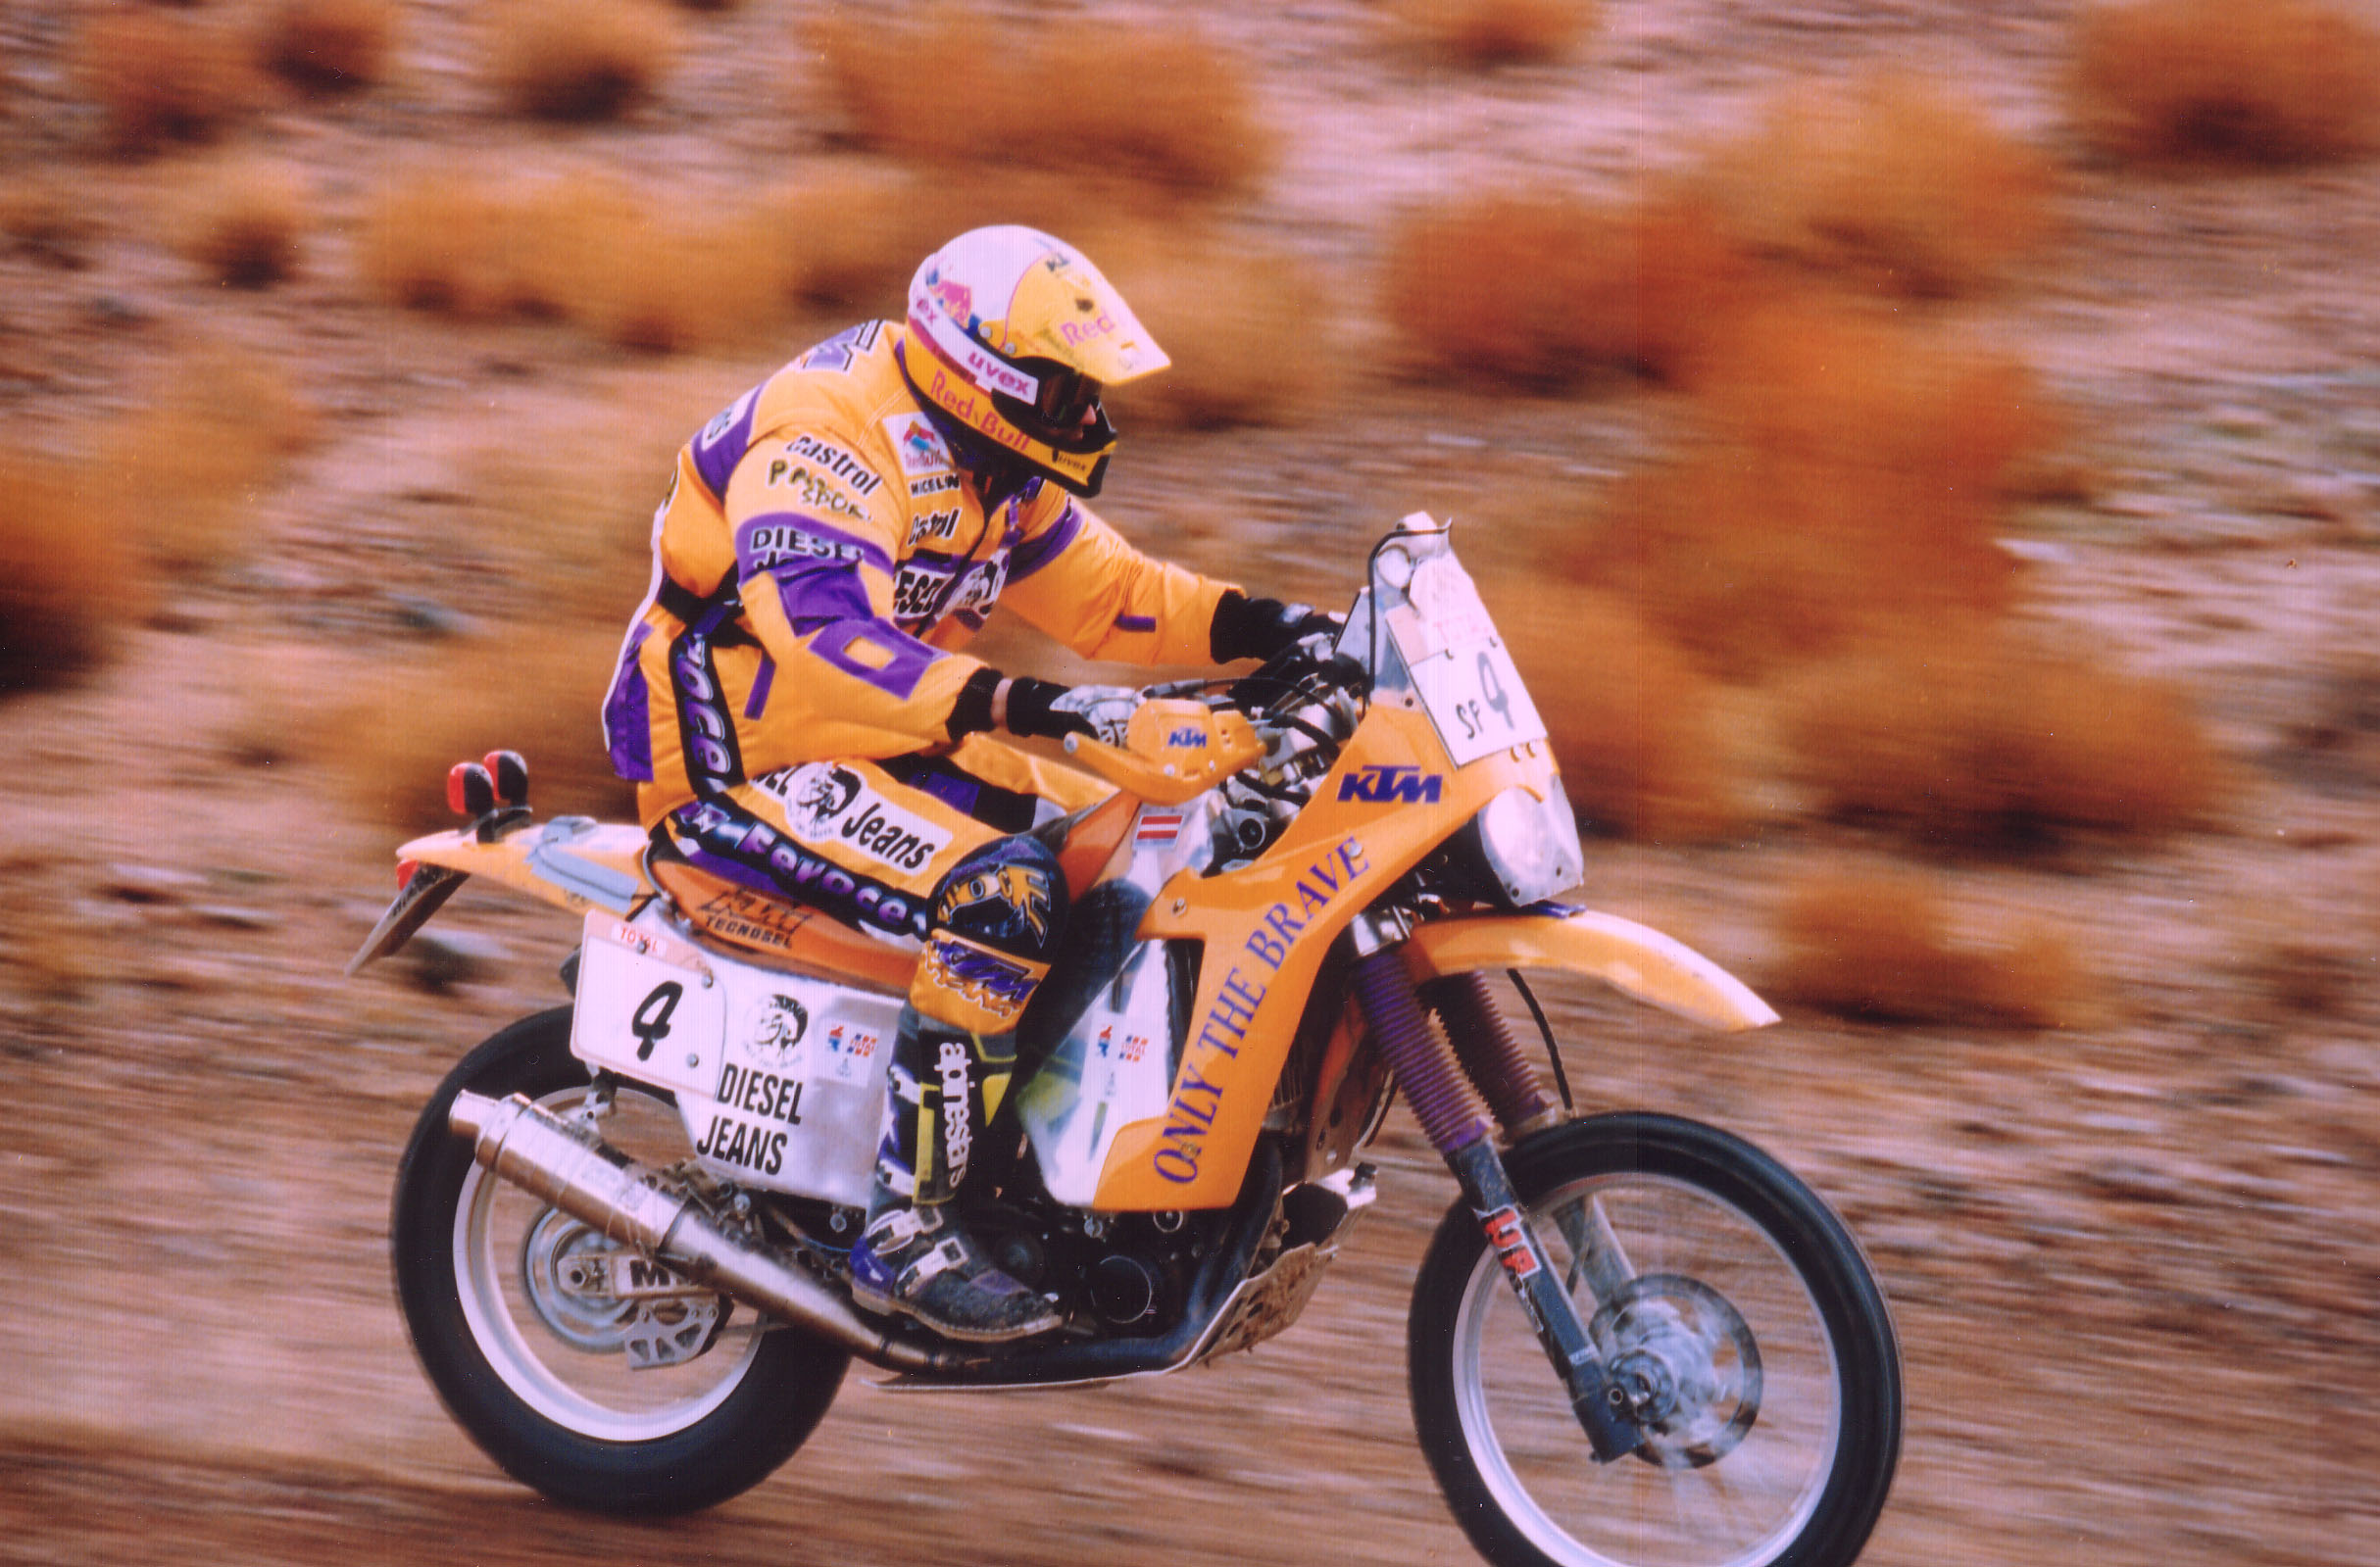 1996 Paris Dakar Rally first time Red Bull Helmet